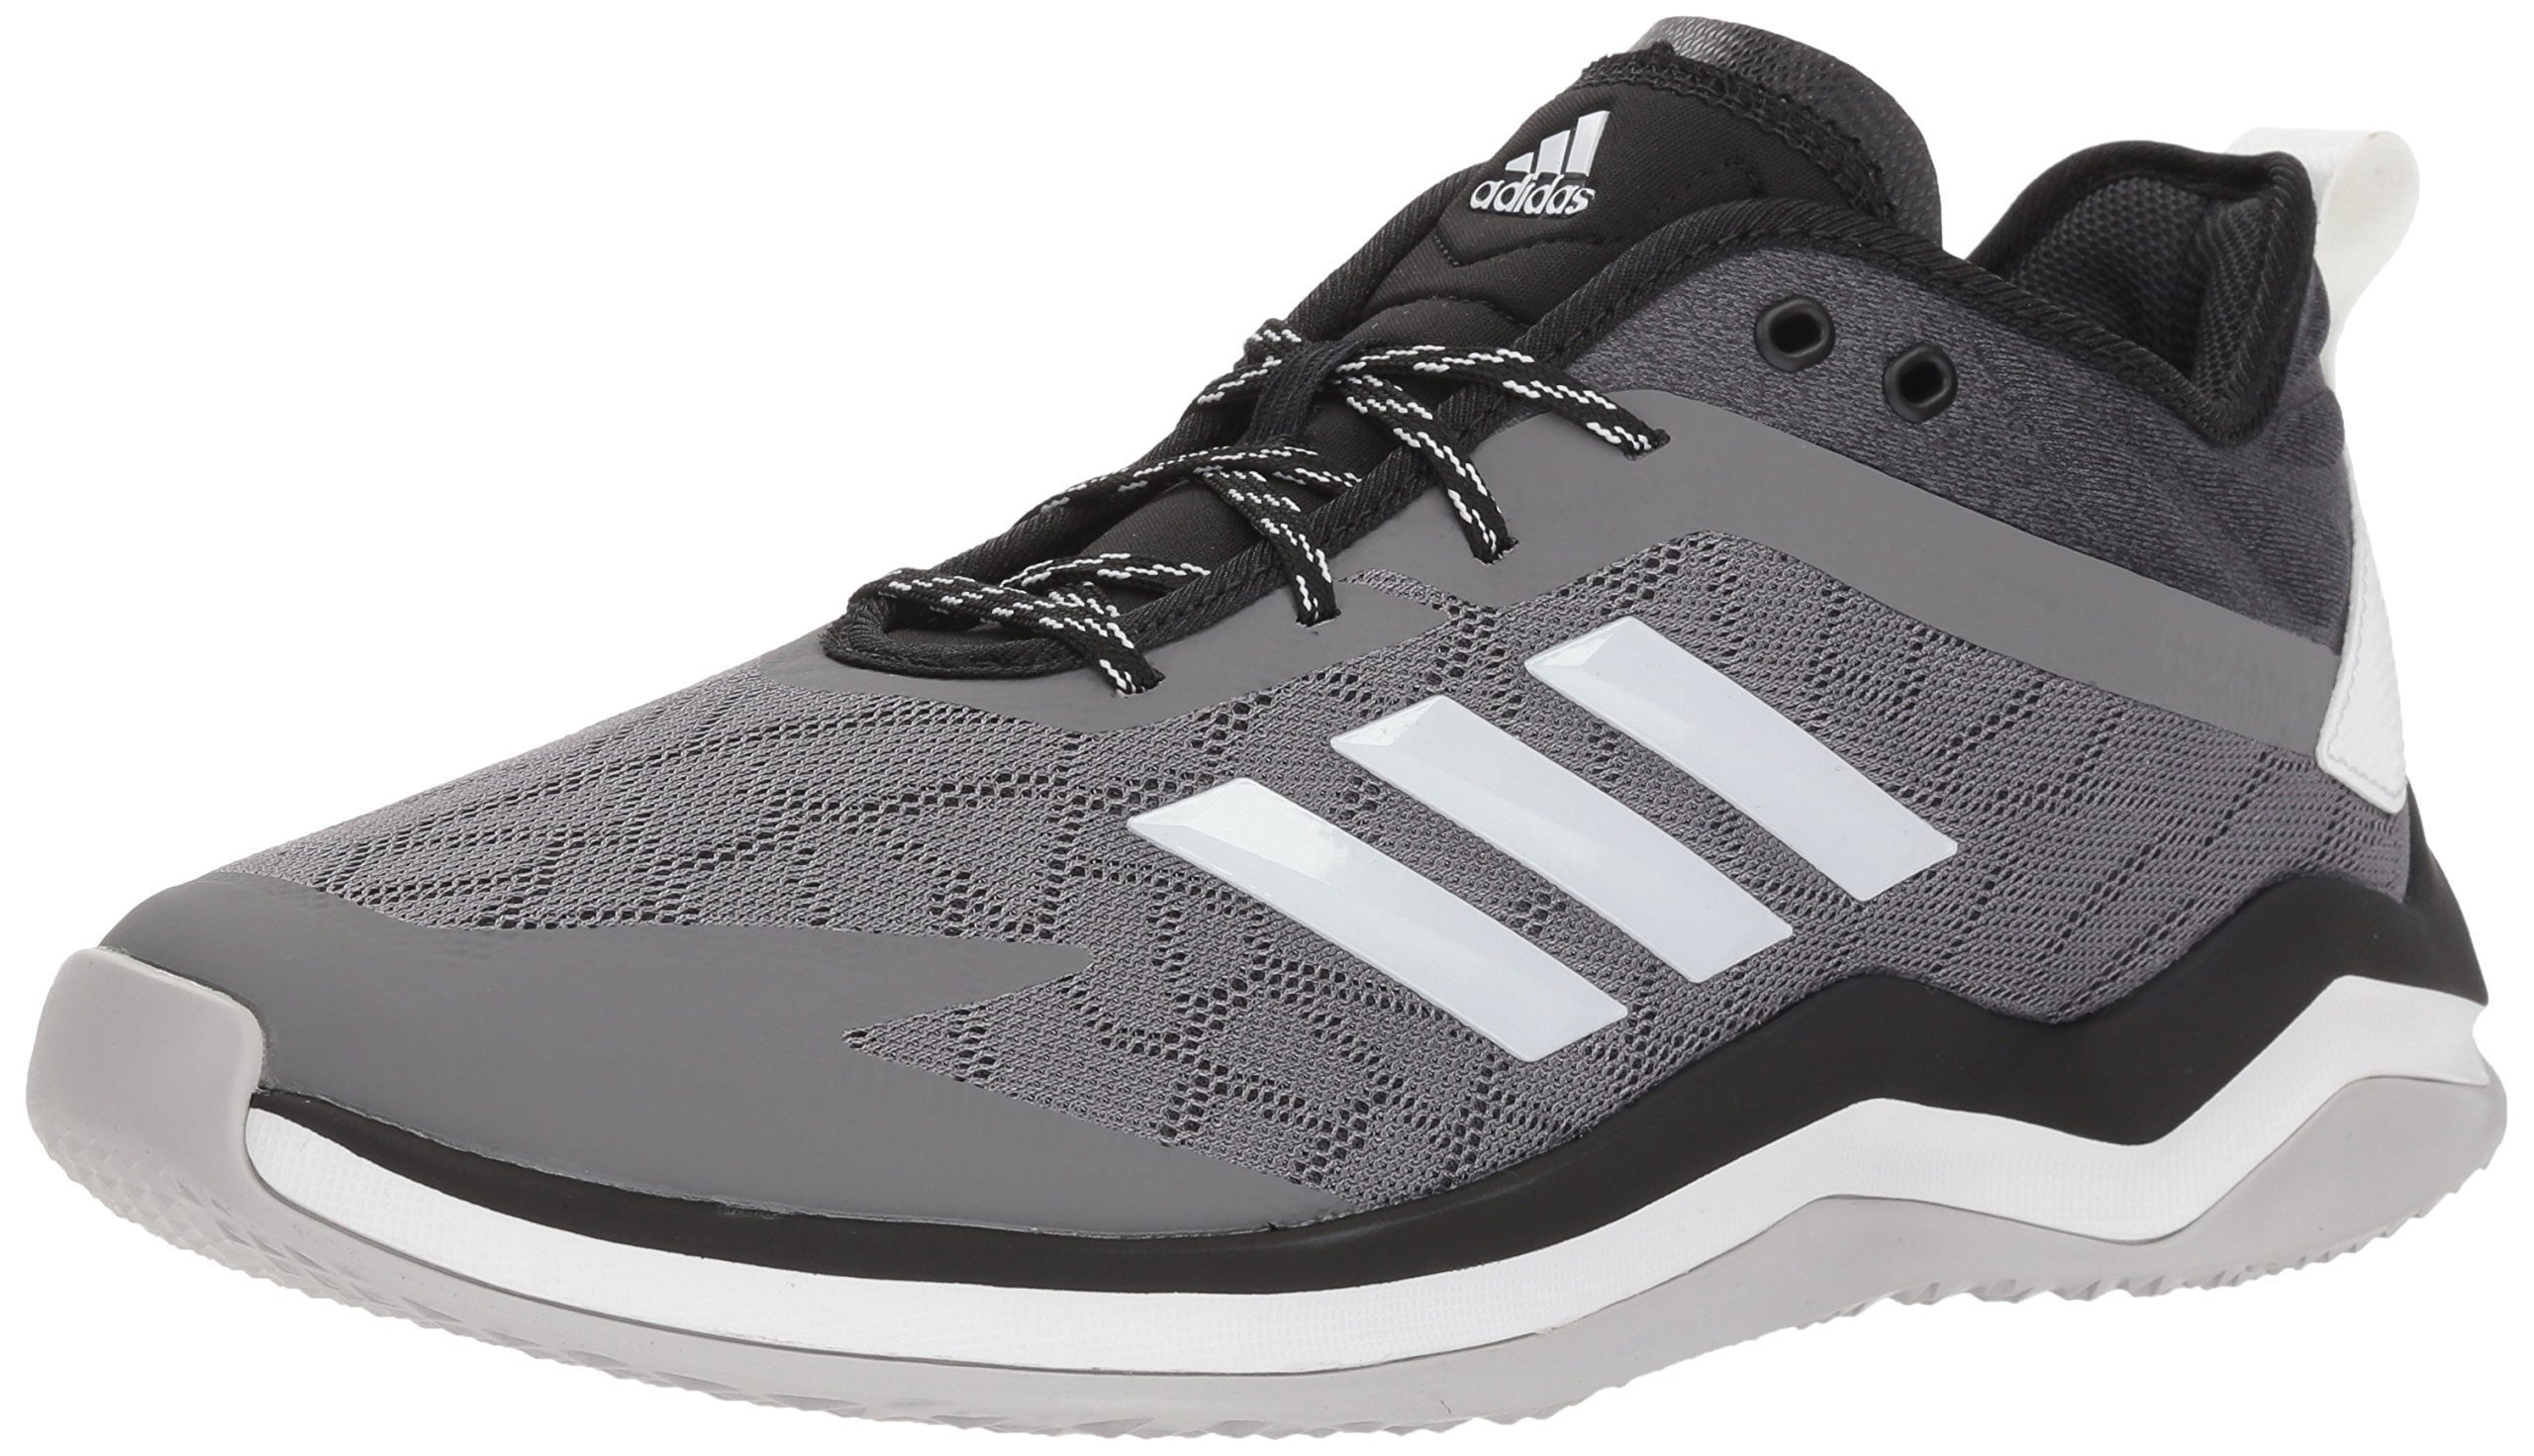 adidas Men's Speed Trainer 4 Baseball Shoe, Grey/Crystal White/Black, 8.5 M US by adidas